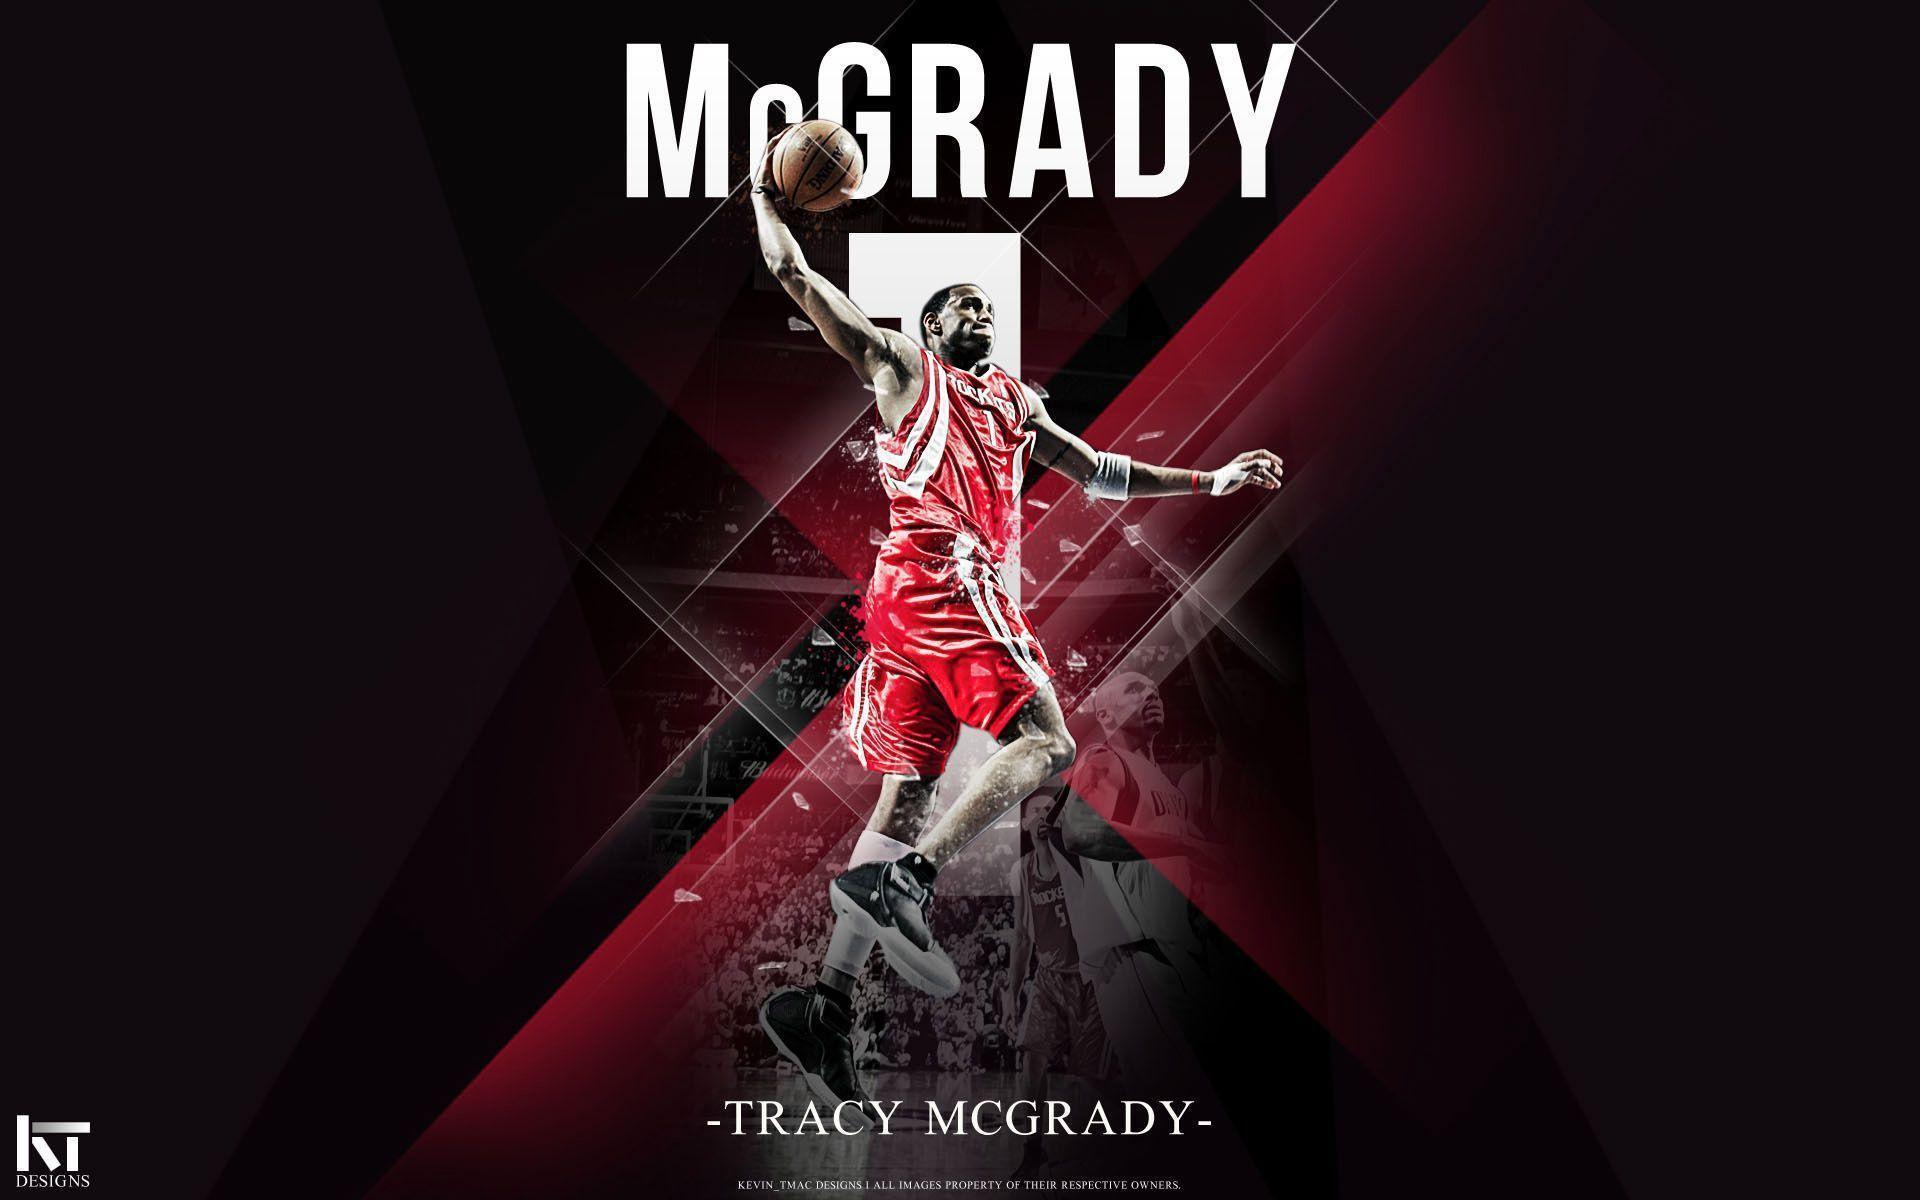 tracy mcgrady wallpaper desktop - photo #22